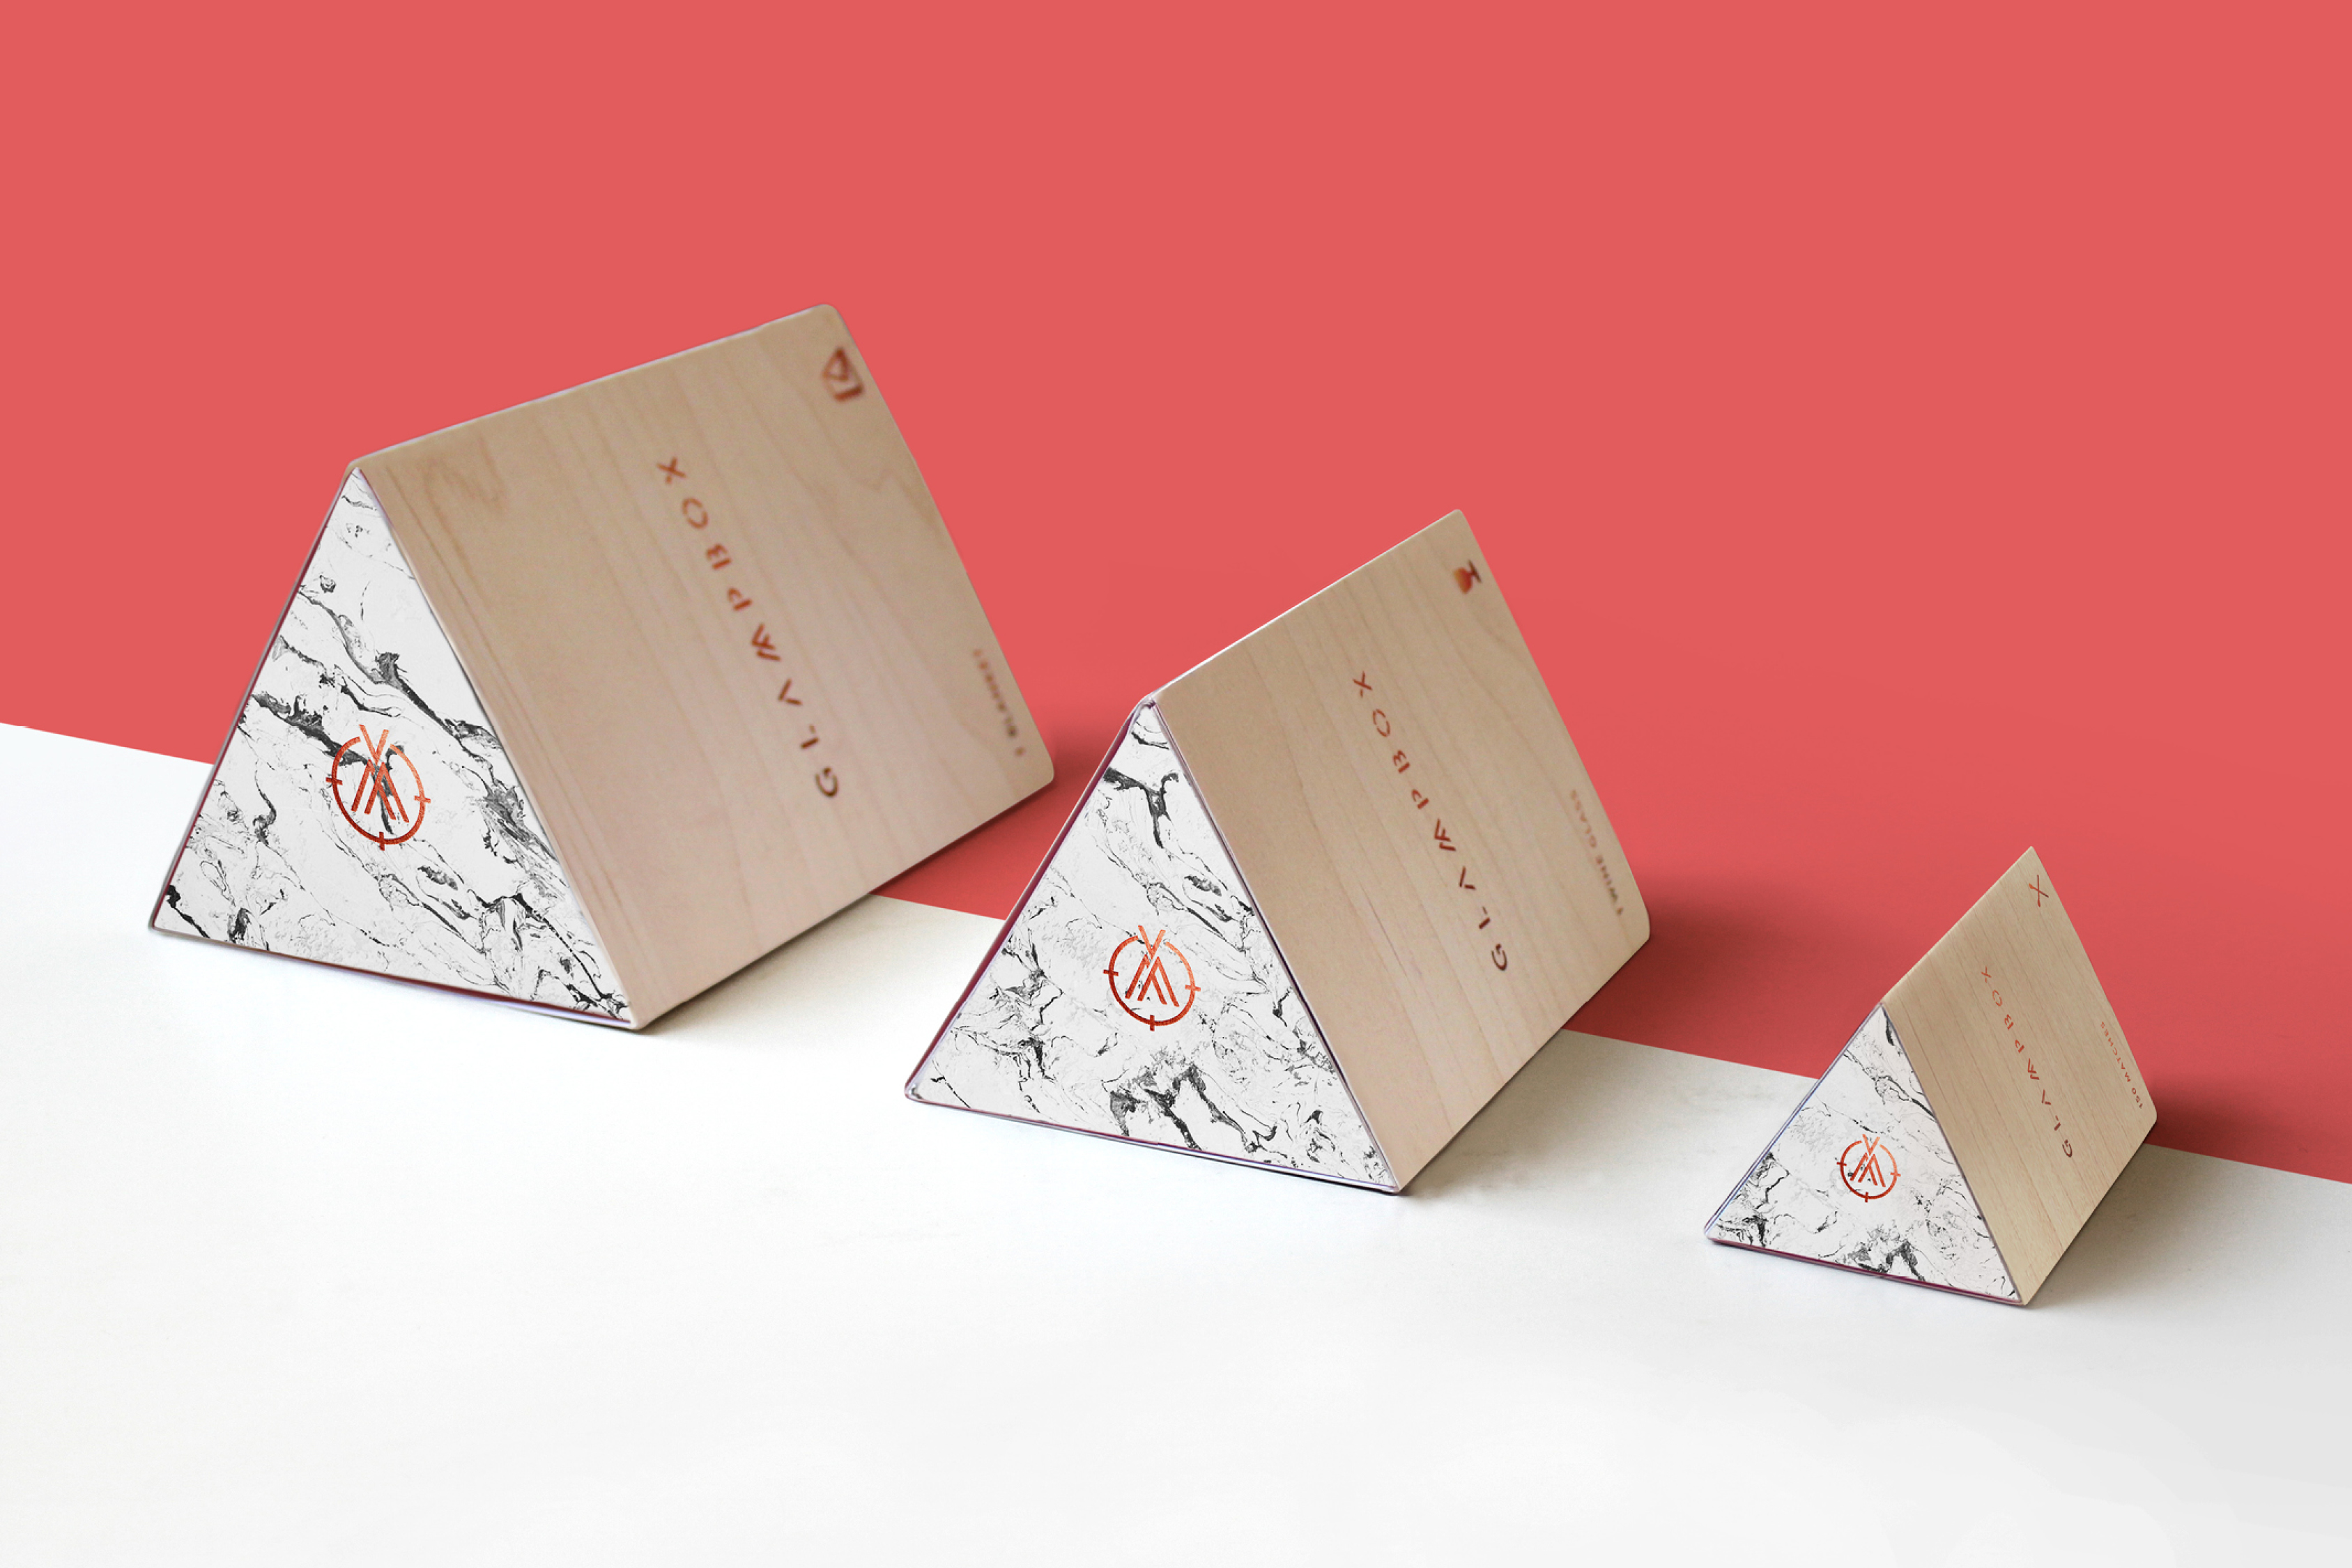 Glampbox—Branding & Packaging